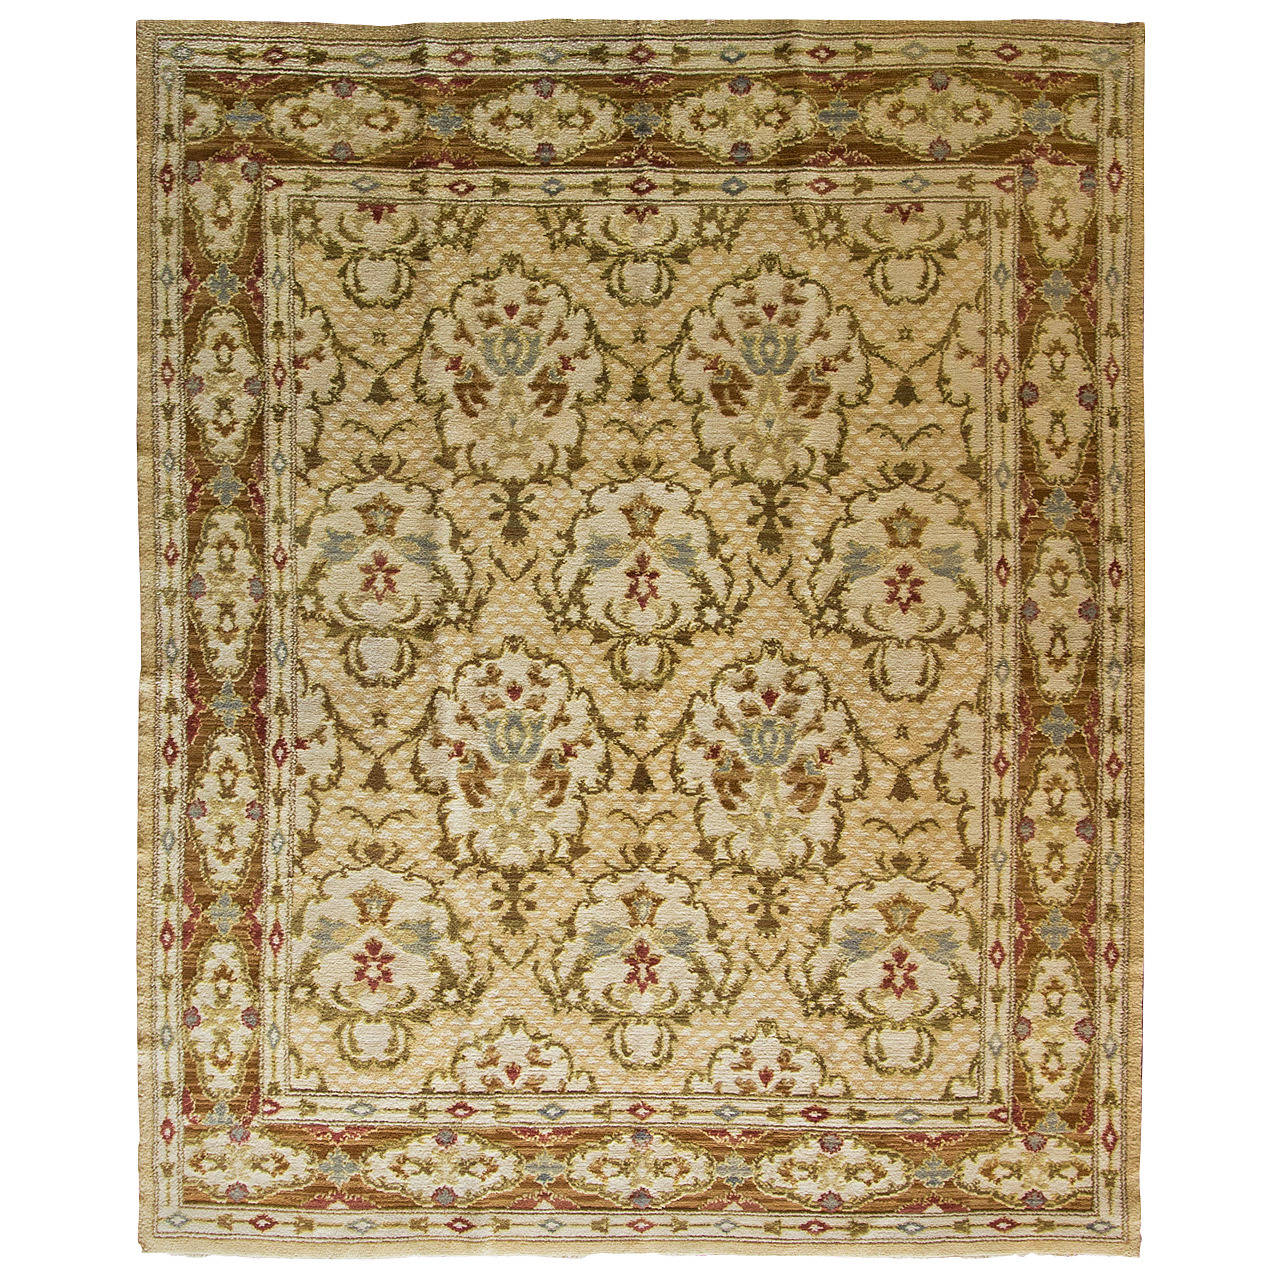 An Spanish Savonnerie Carpet For Sale at 1stdibs